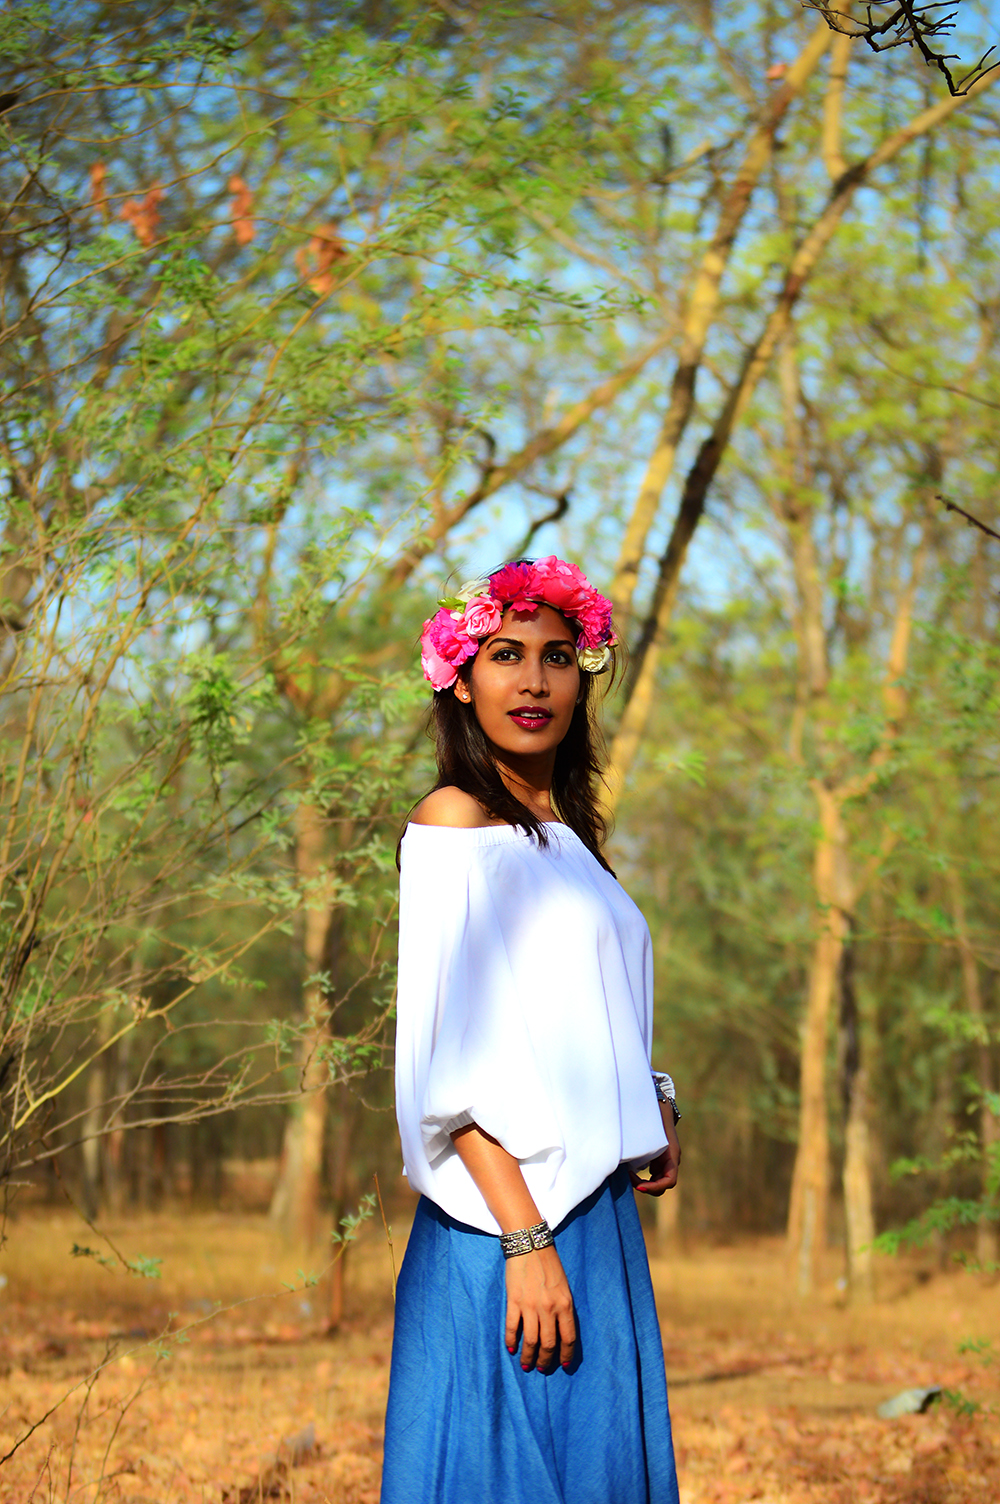 Fashion, Style, Indian Fashion Bloggers, Fashion Blogger, Bardot Top Trend, Indian Street Style, Flower Crown, Street Fashion, Street Style Photography-3